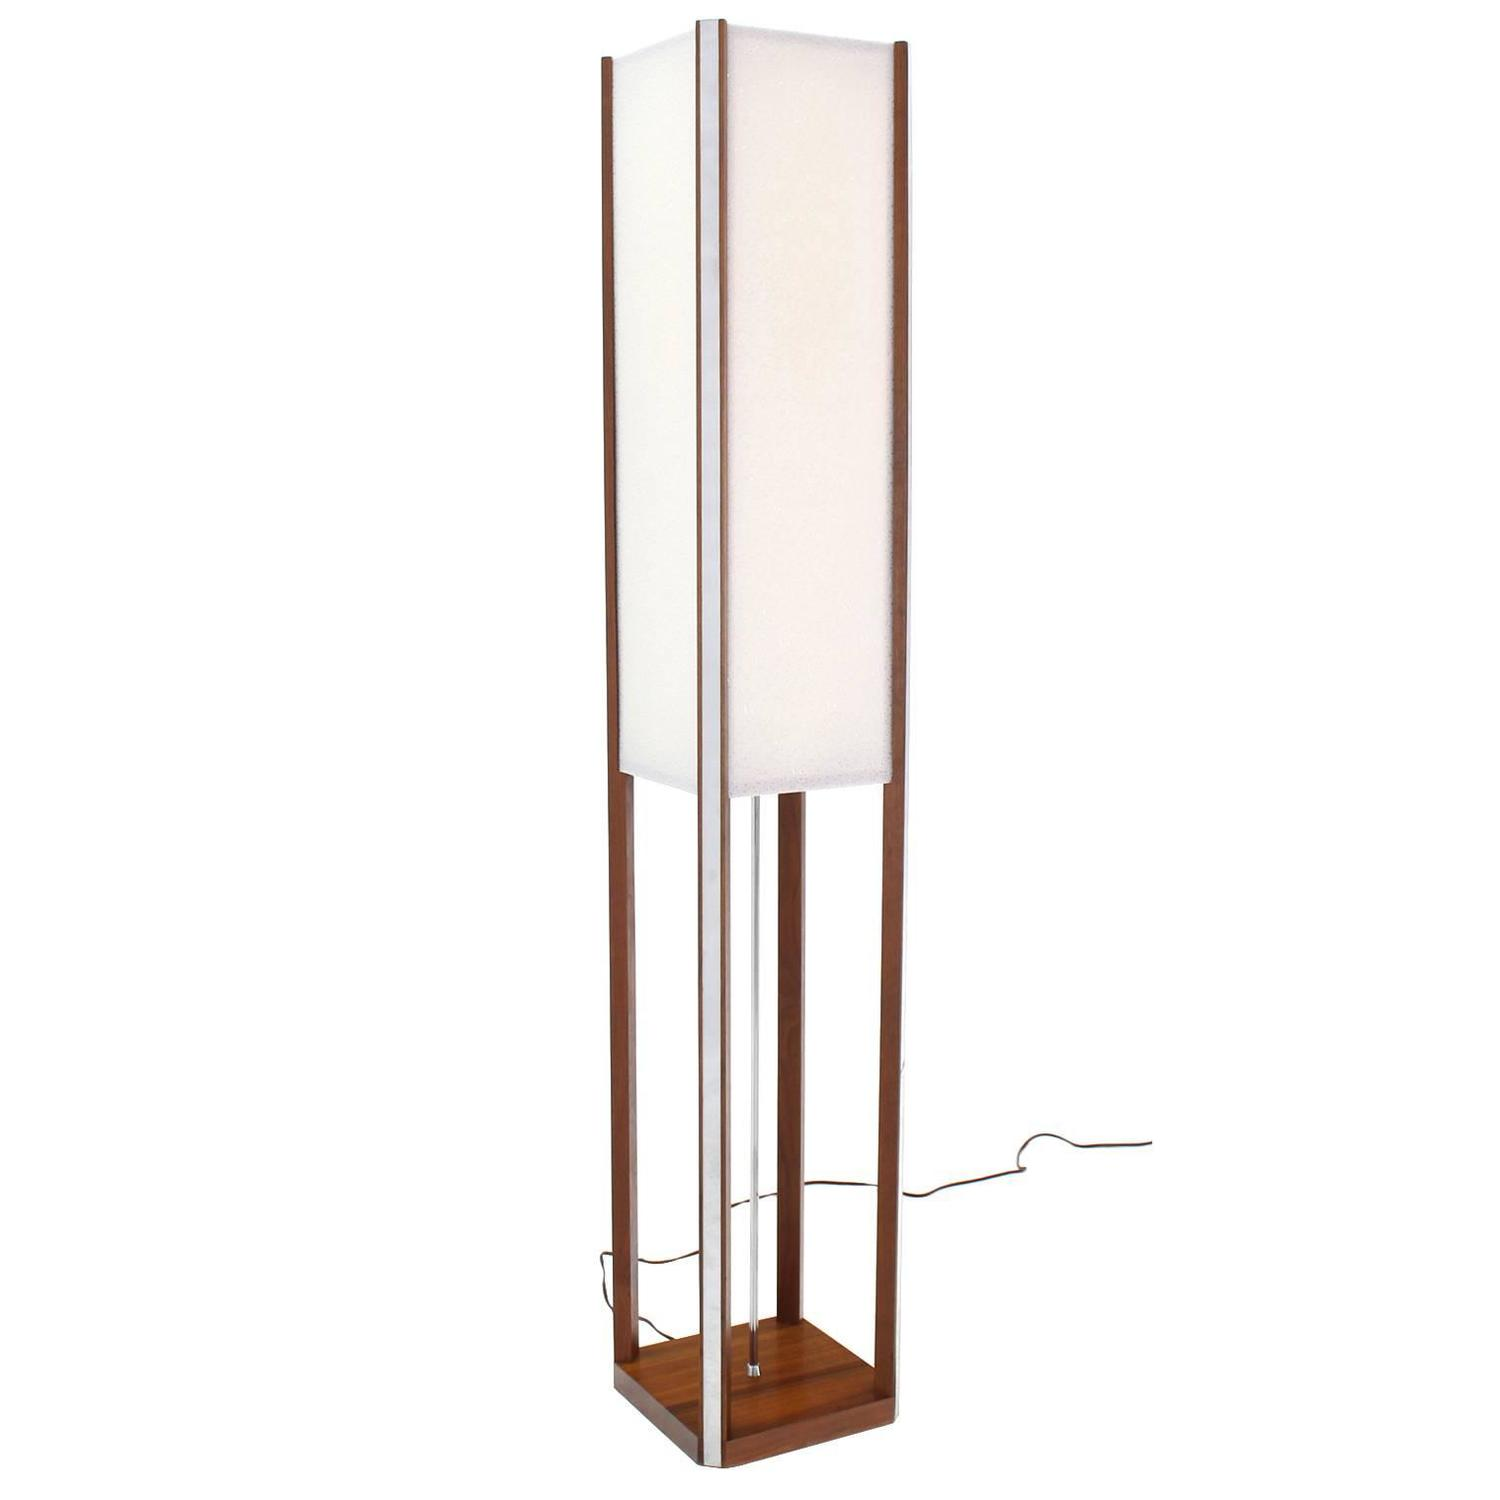 walnut square tower shape mid century modern floor lamp With modern tower floor lamp